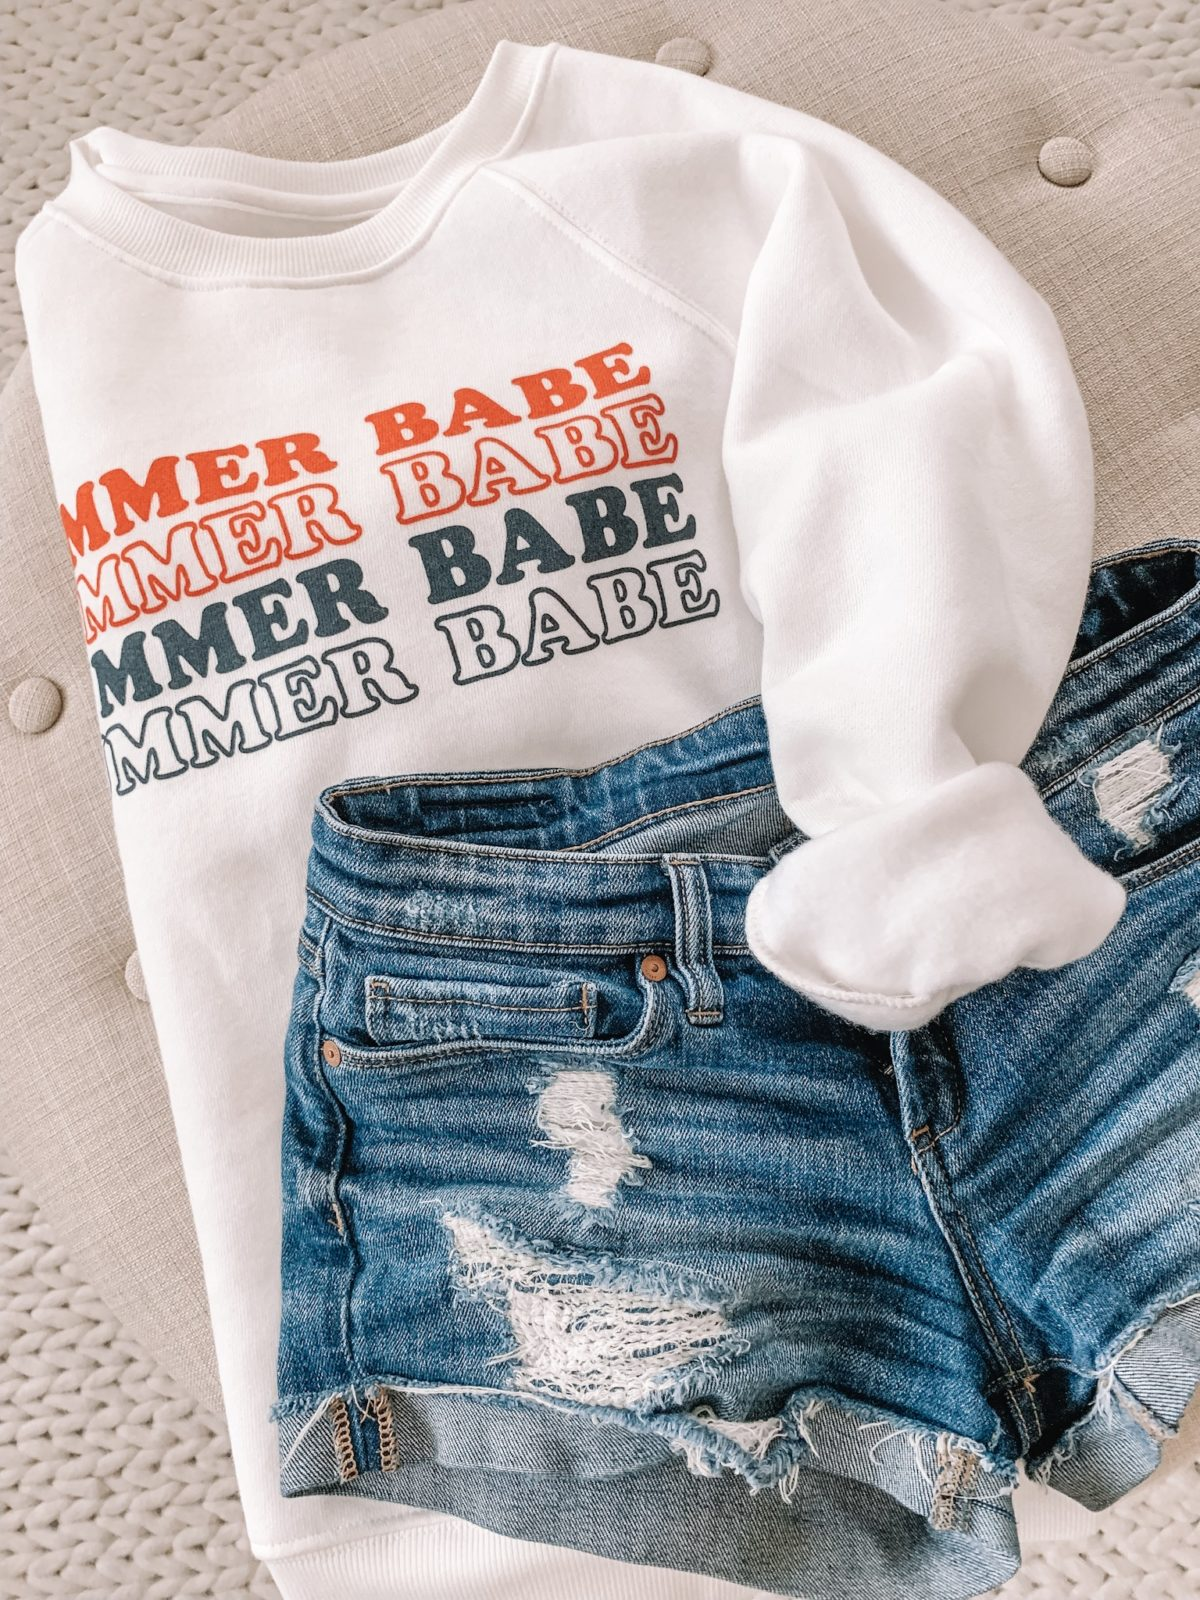 Summer Babe Sweatshirt and Jean Shorts